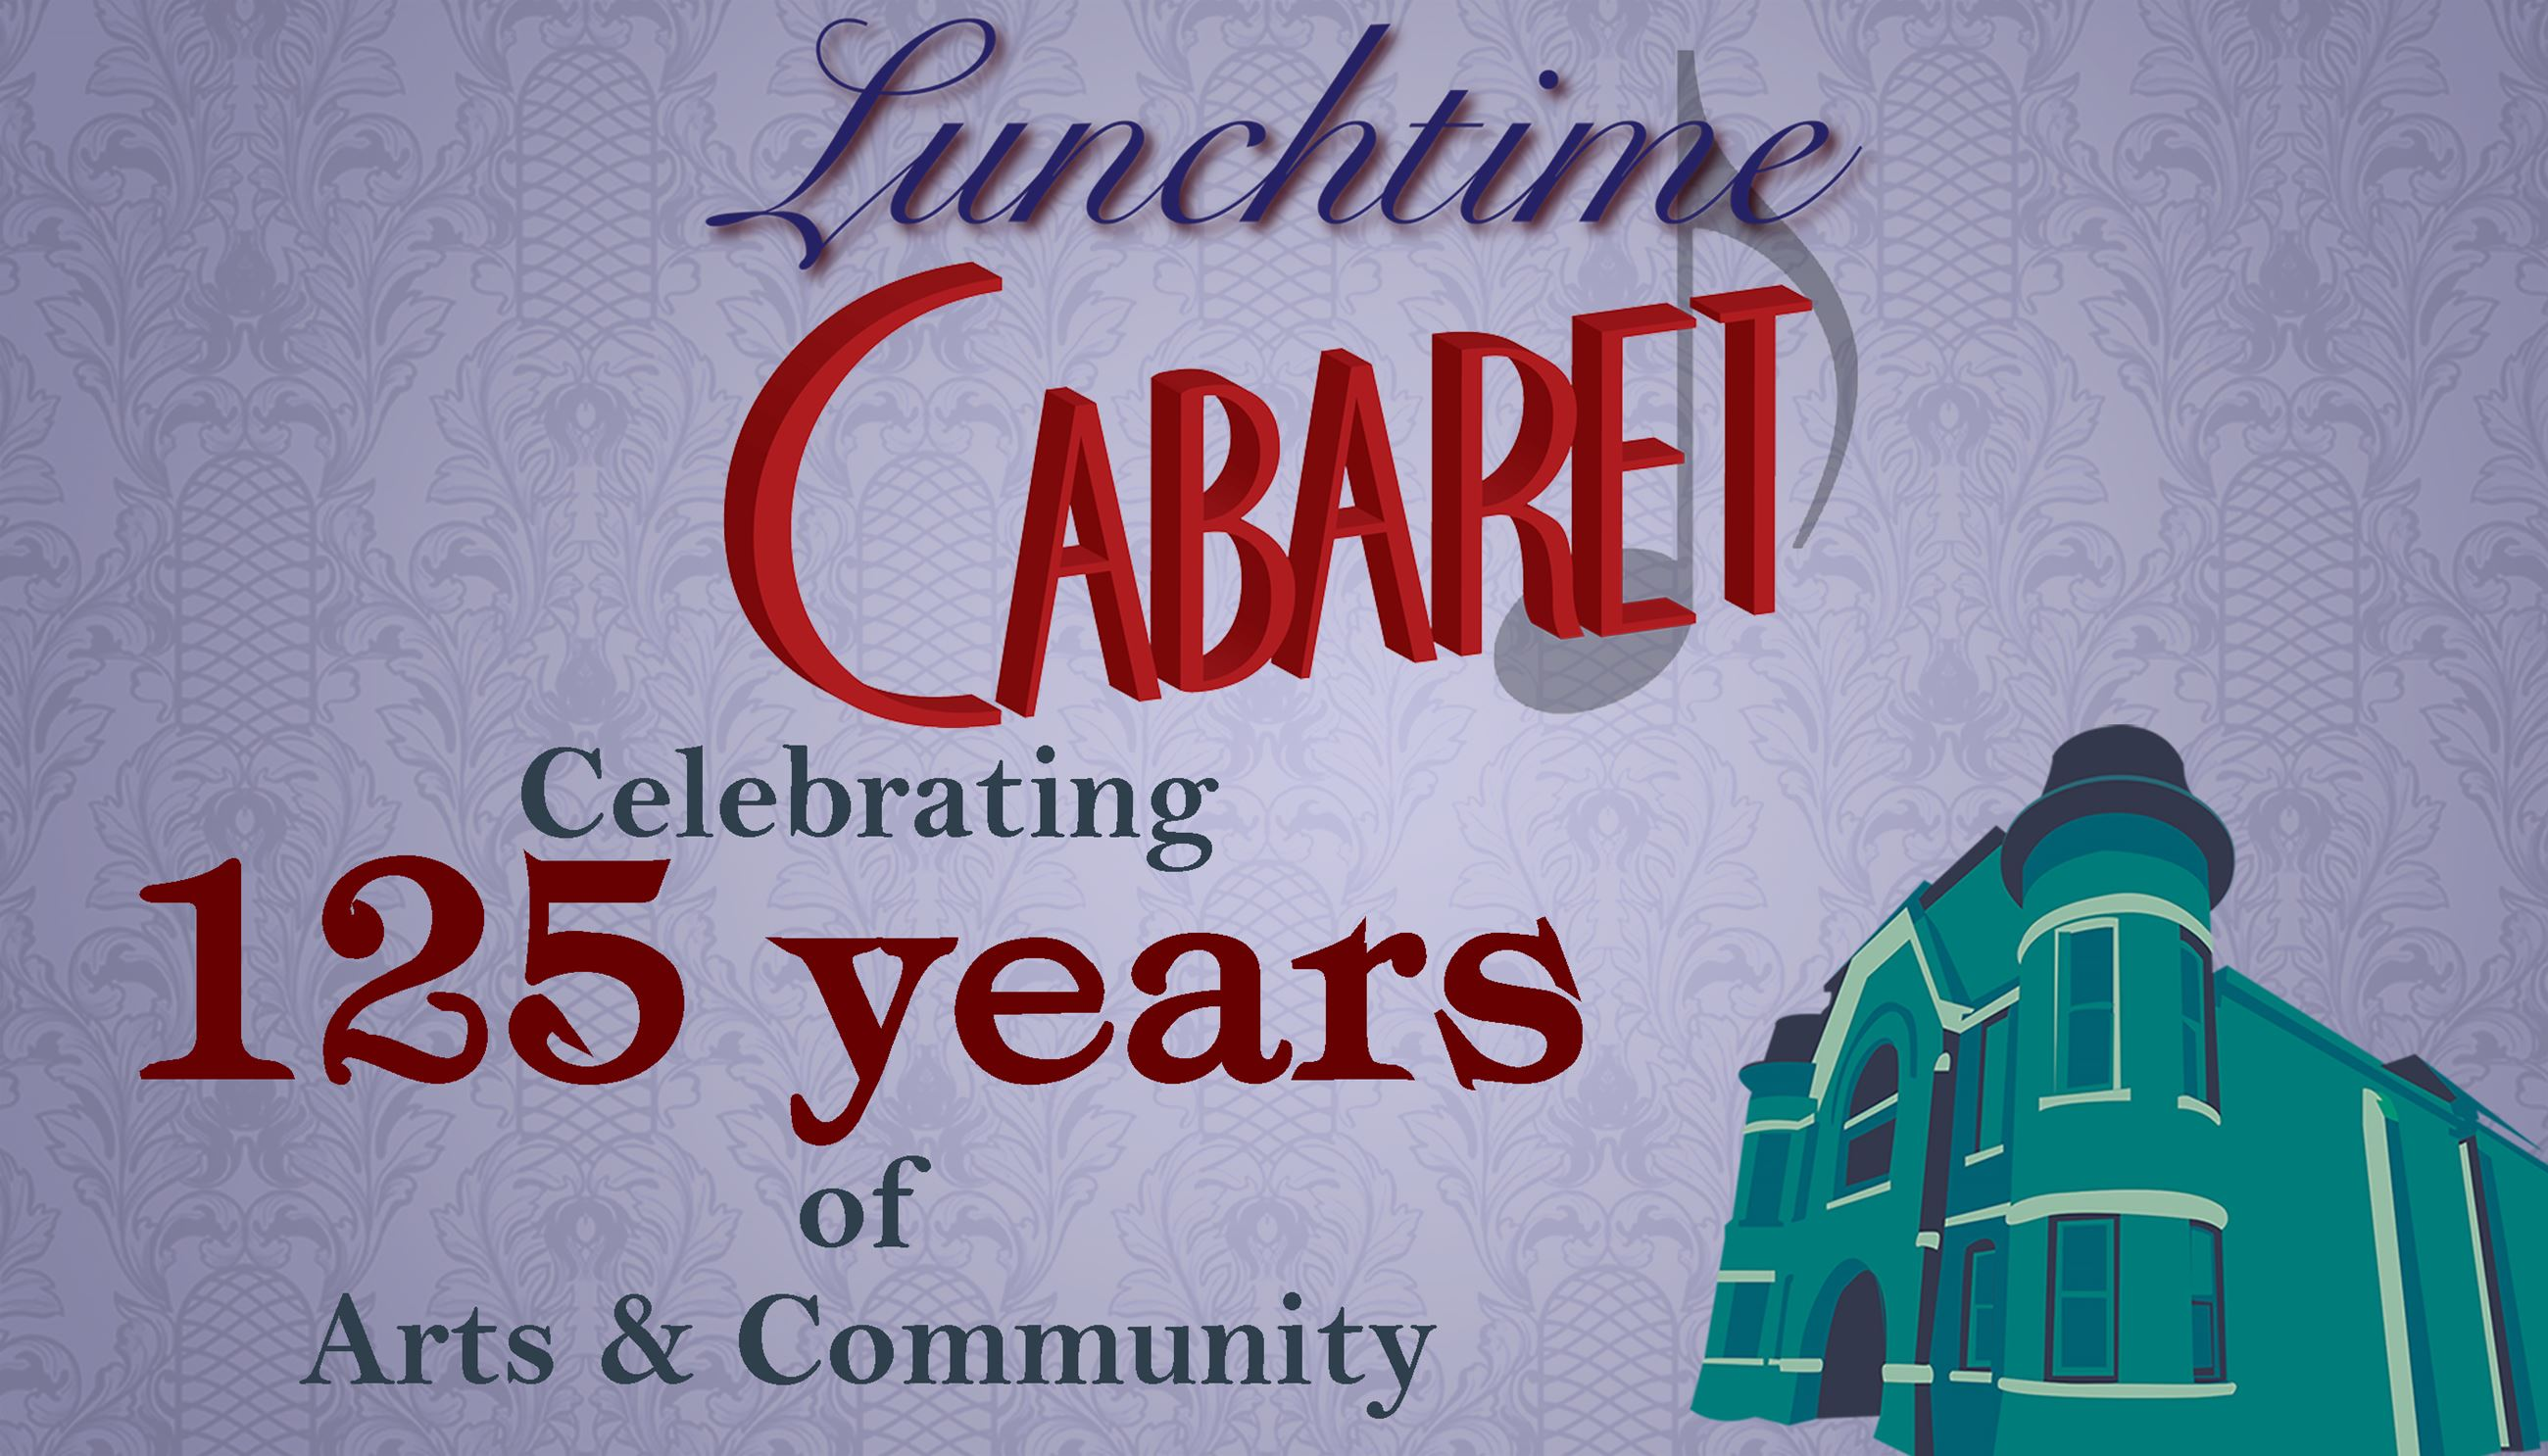 Lunchtime Cabaret 2018 Season Subscription Posters